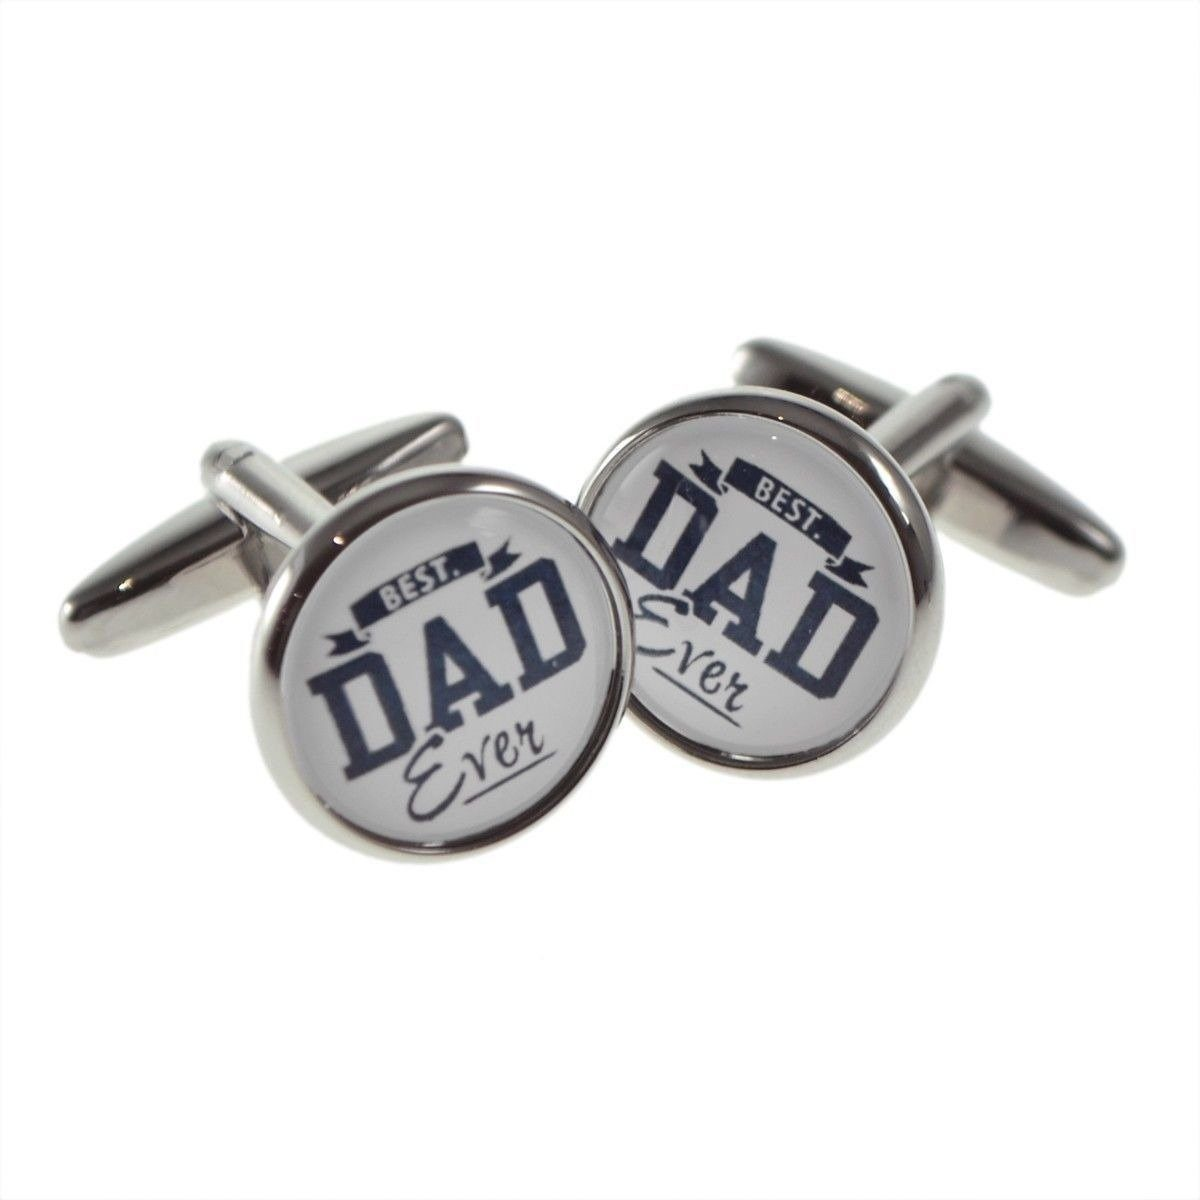 Best Dad Ever Round Cufflinks, Novelty Cufflinks, Cuffed.com.au, CL8445, $29.00